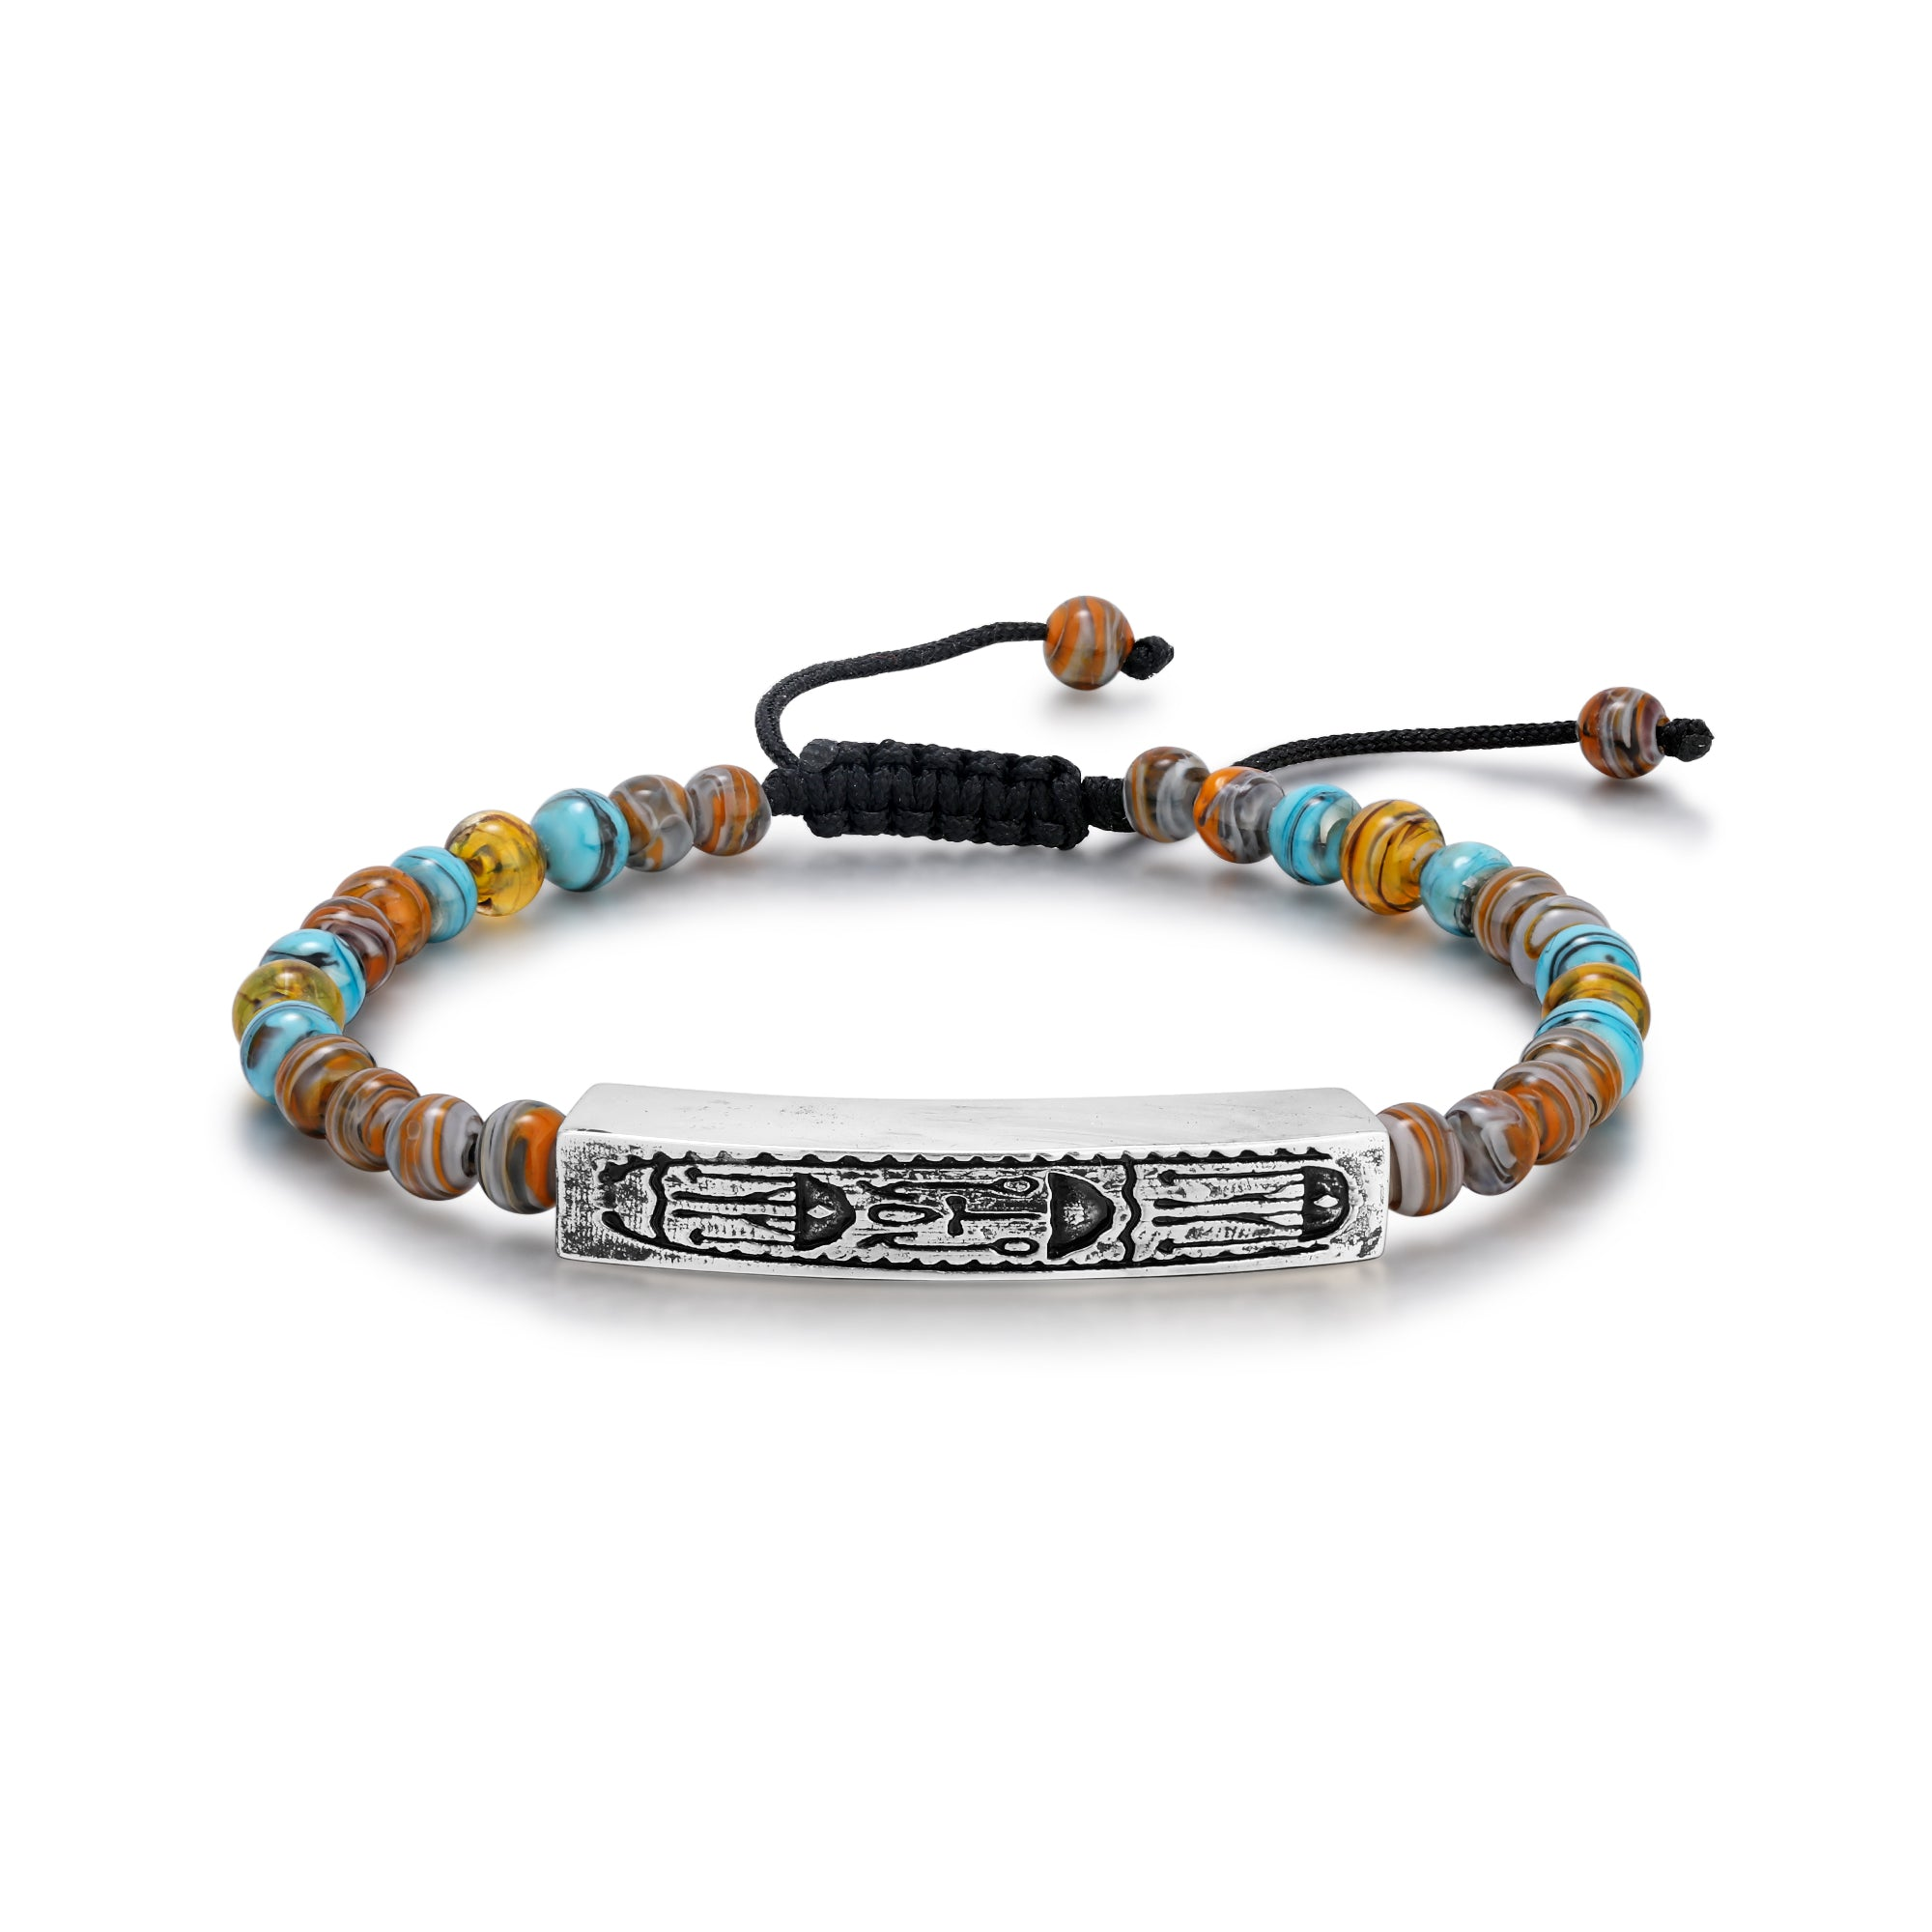 Blue and Brown Murano Glass Bead Bracelet with Hieroglyphics Bar